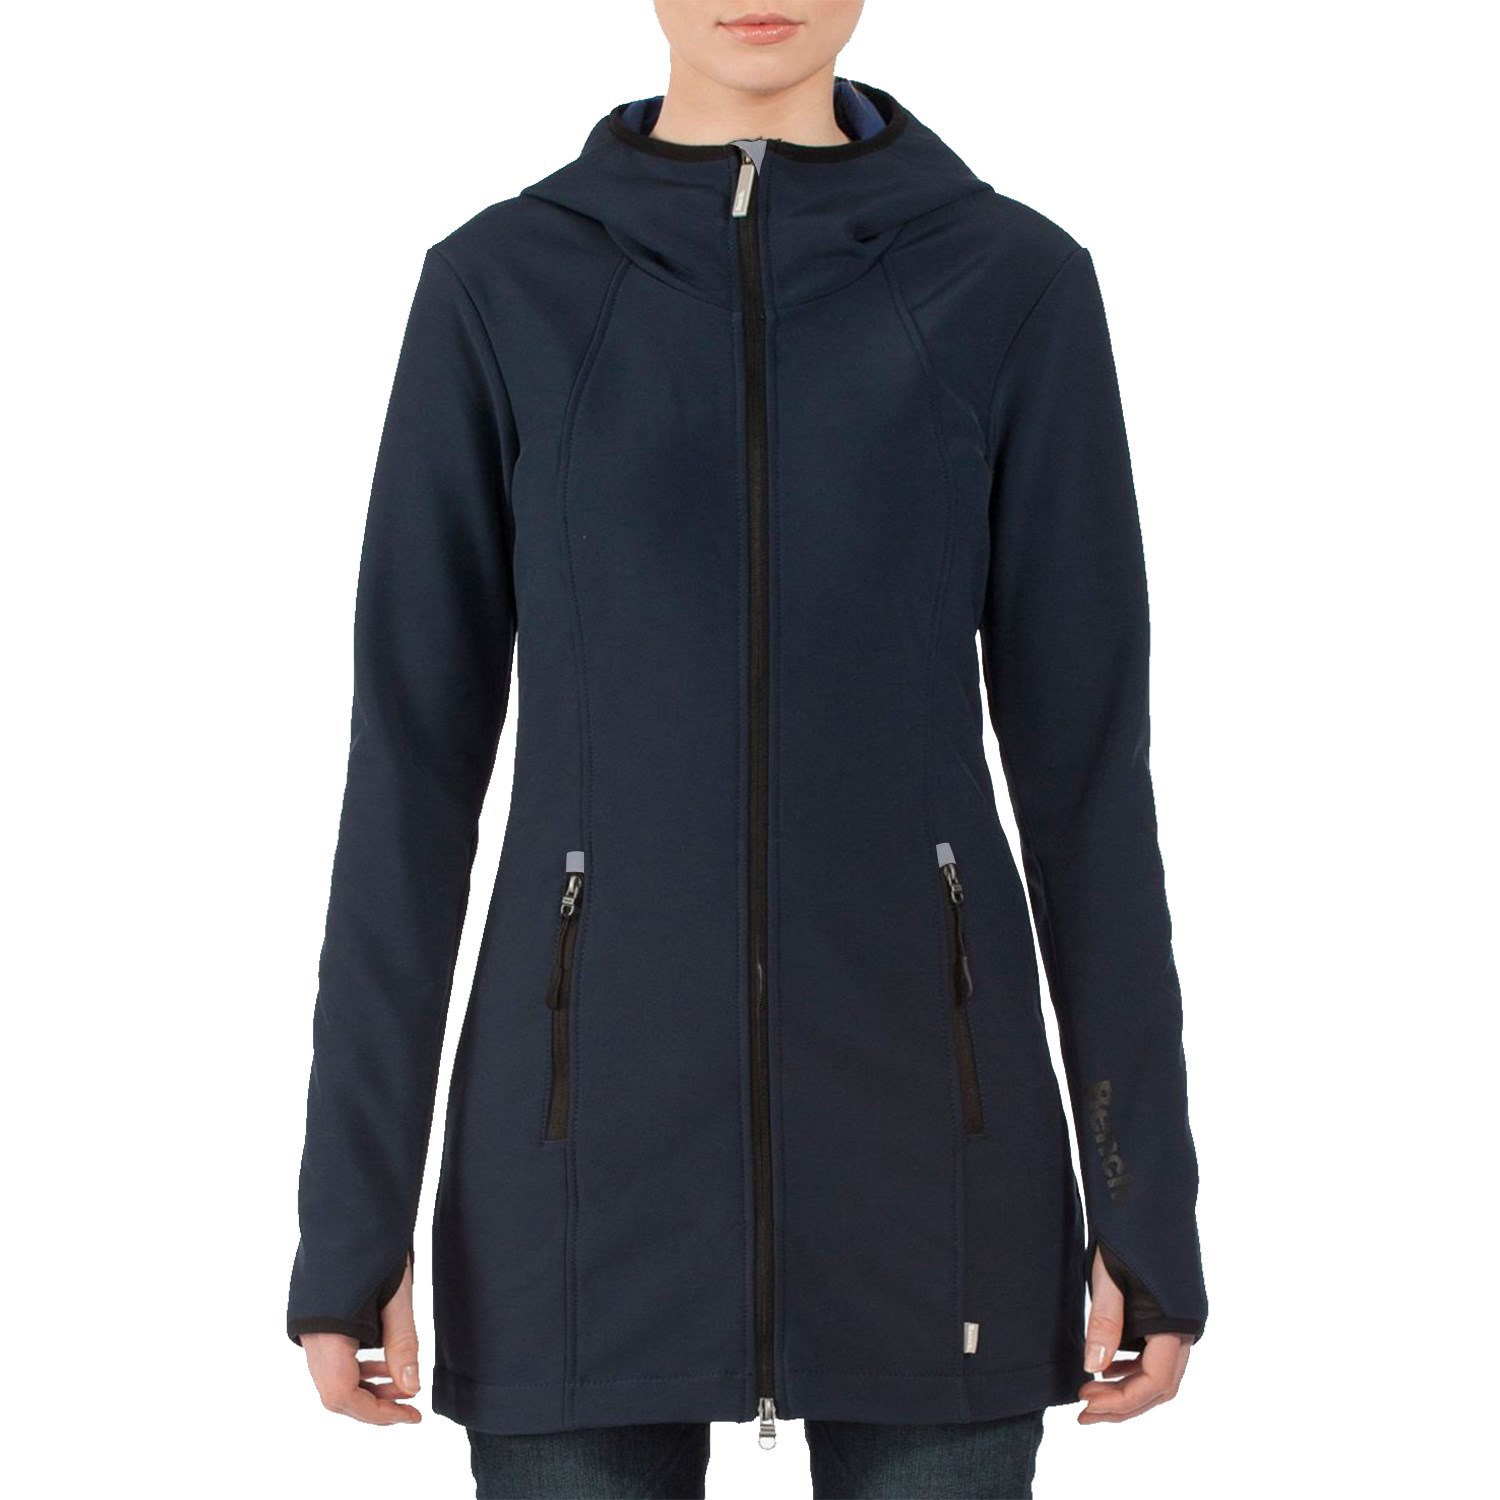 Bench Jackets Women Online Clothing Stores